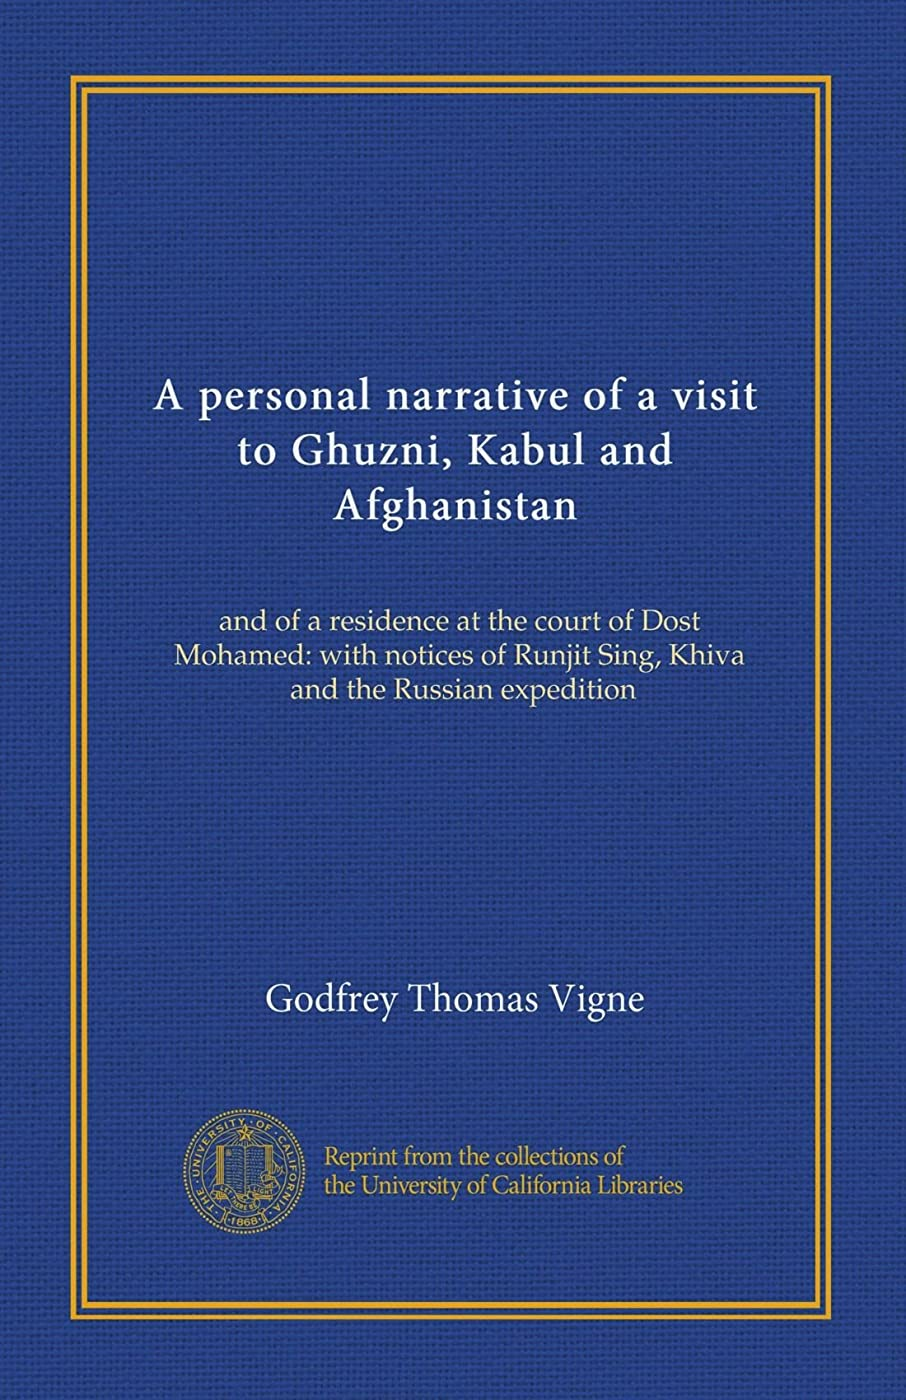 リットル敵対的想定するA personal narrative of a visit to Ghuzni, Kabul and Afghanistan: and of a residence at the court of Dost Mohamed: with notices of Runjit Sing, Khiva, and the Russian expedition